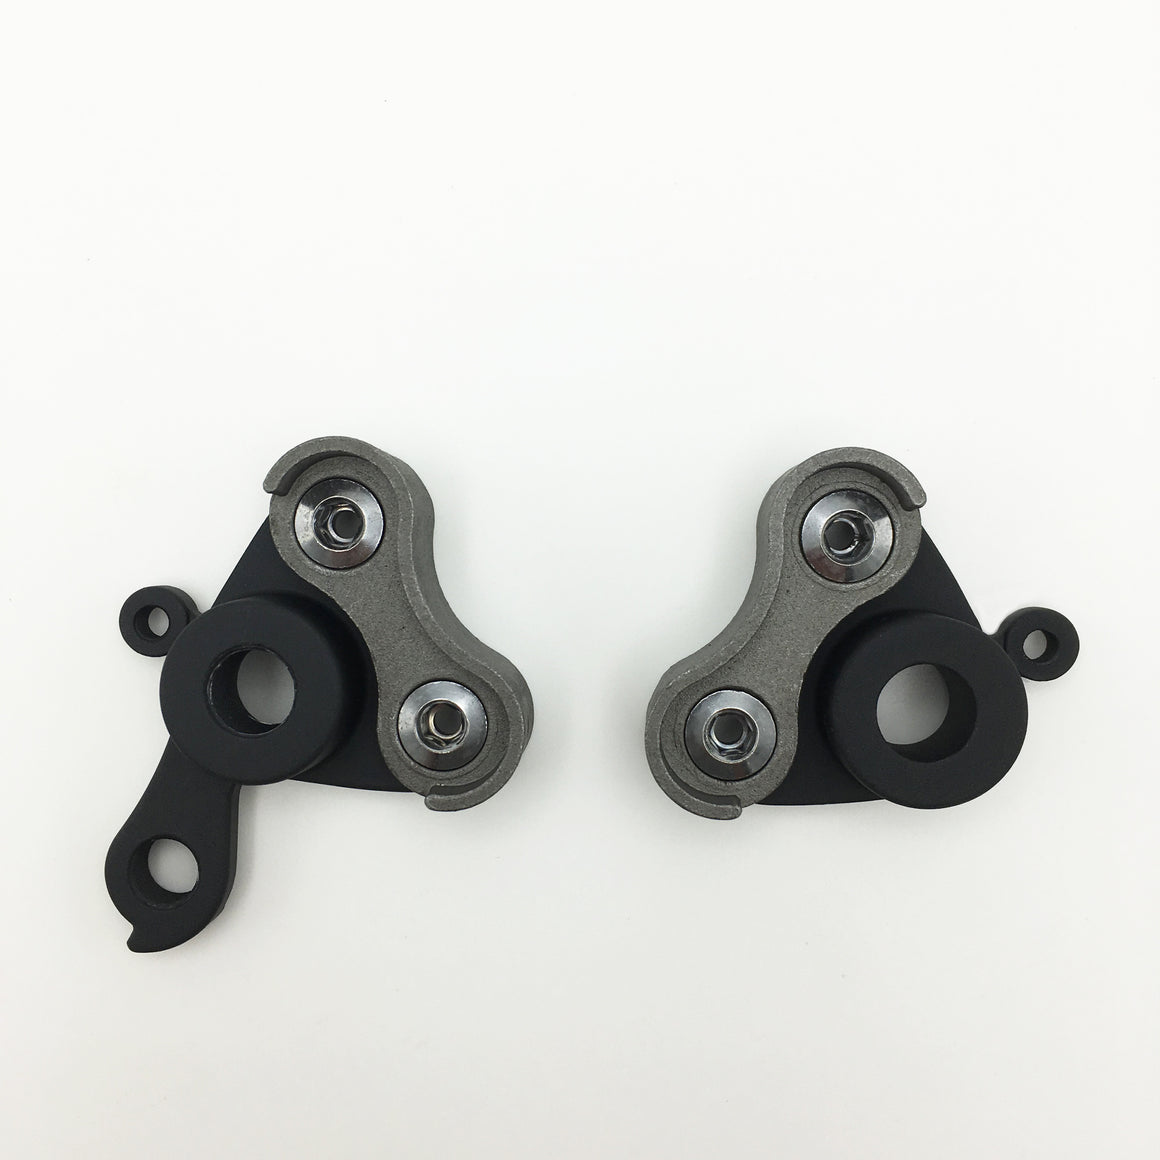 Complete thru-axle modular dropout set - with eyelets - 142/12 - 1.0 thread pitch